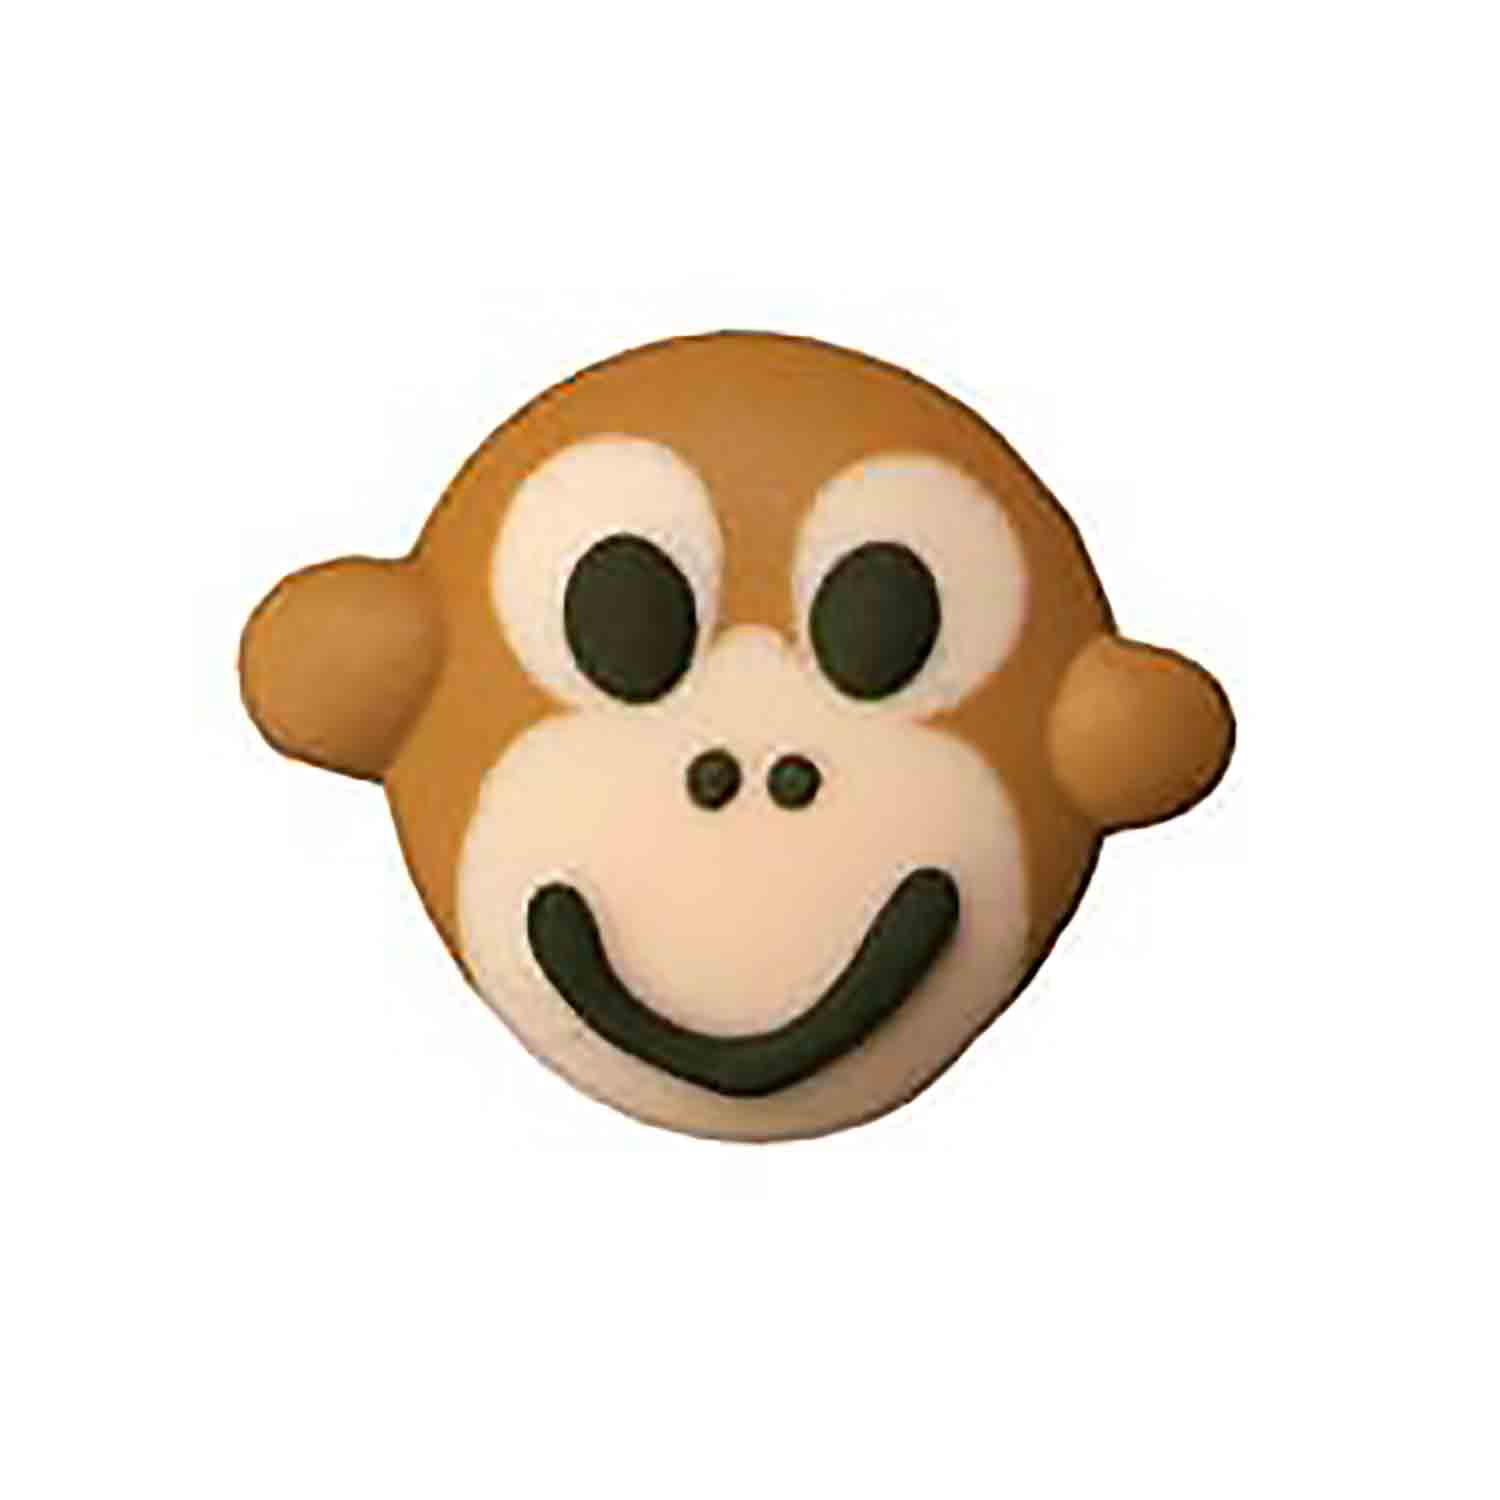 Dec-Ons® Monkey Icing Decorations